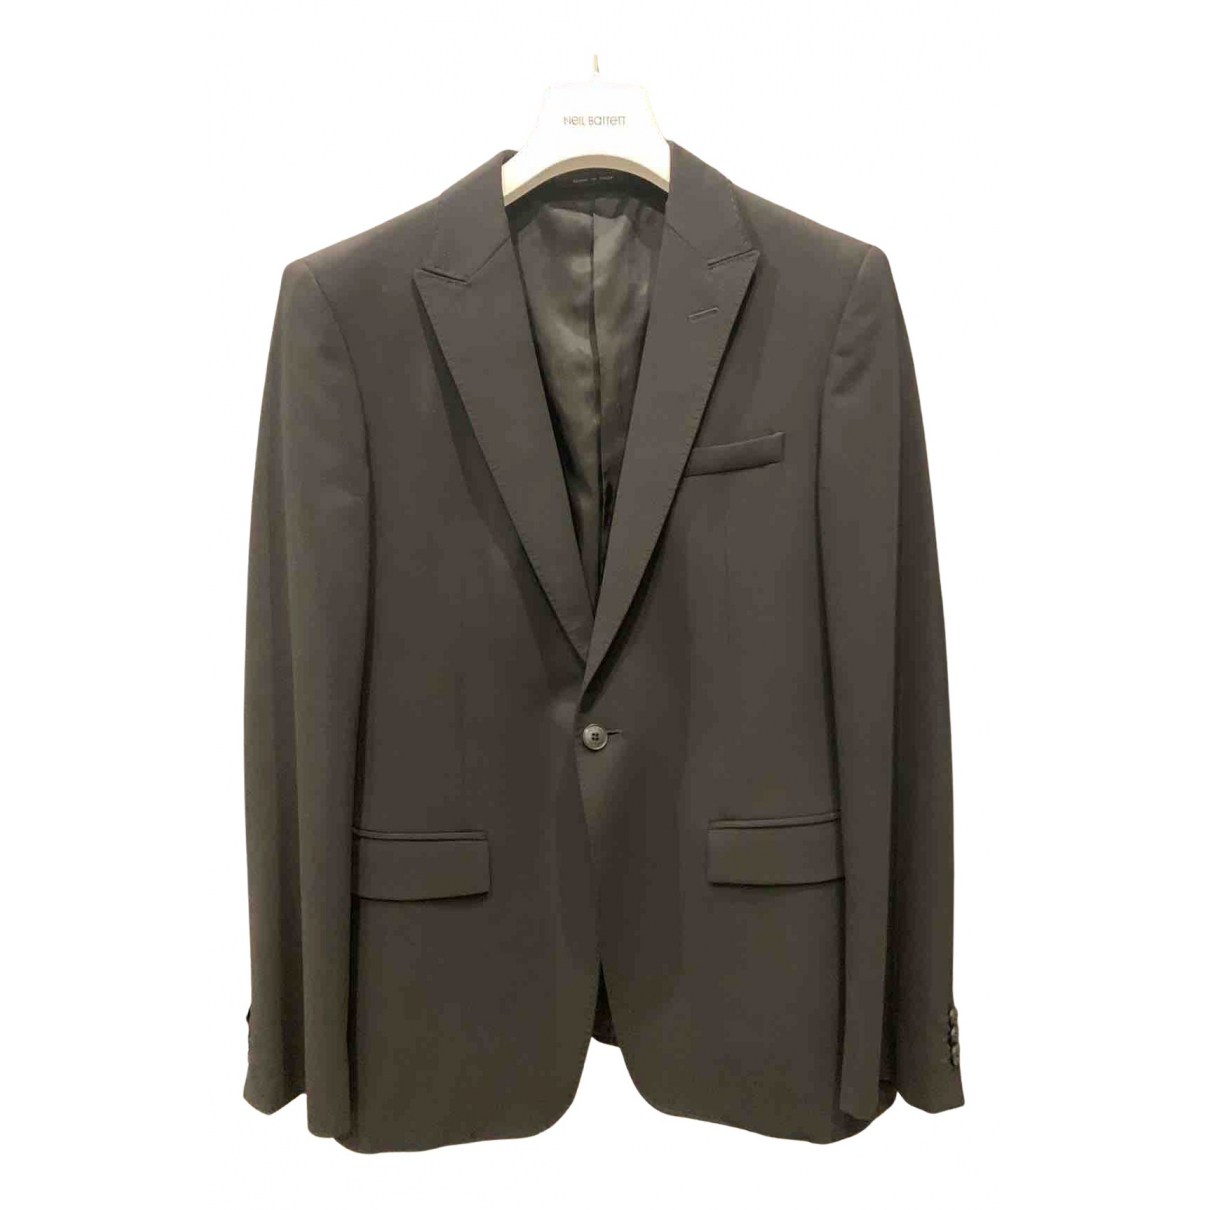 Emporio Armani N Black Wool Suits for Men 48 IT